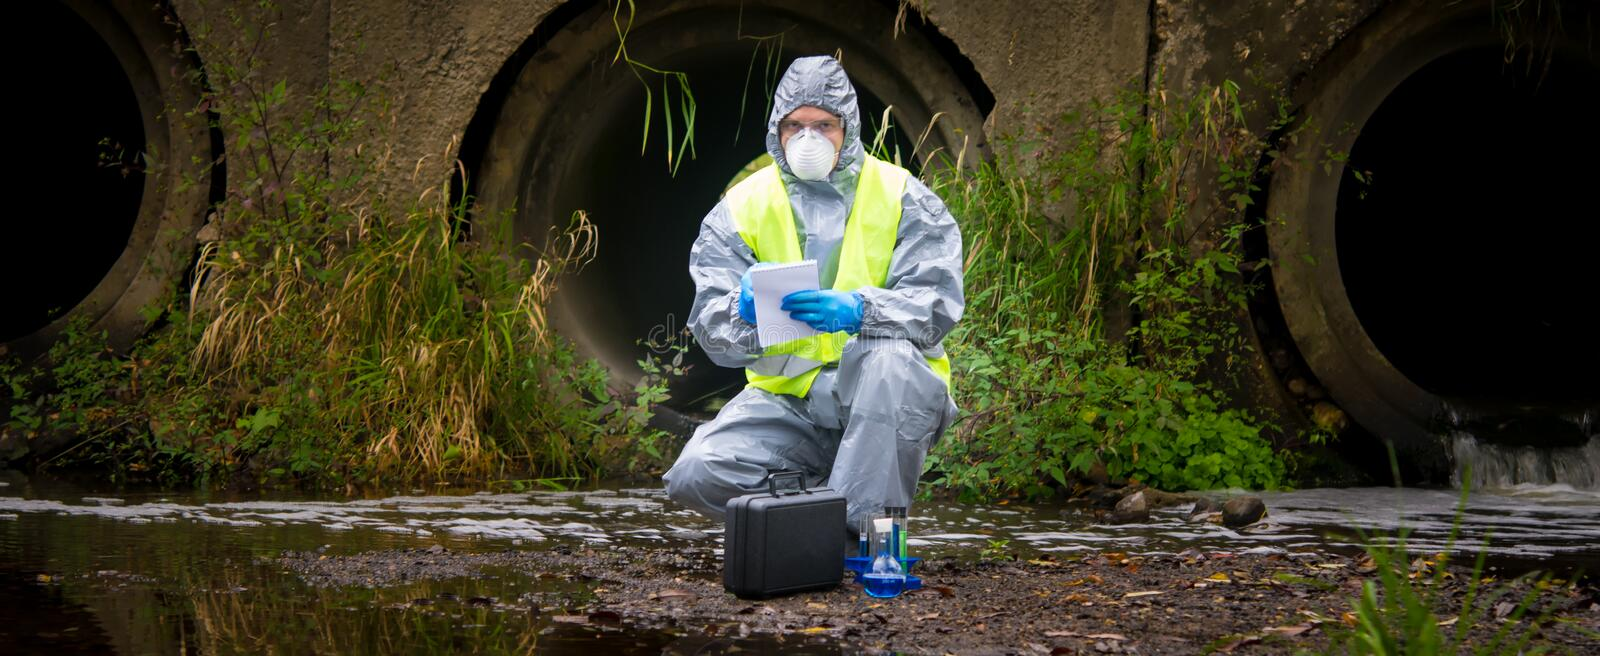 The scientist, wearing a protective suit, gloves and mask, took the liquid from the river, in test tubes, and writes the results stock photo